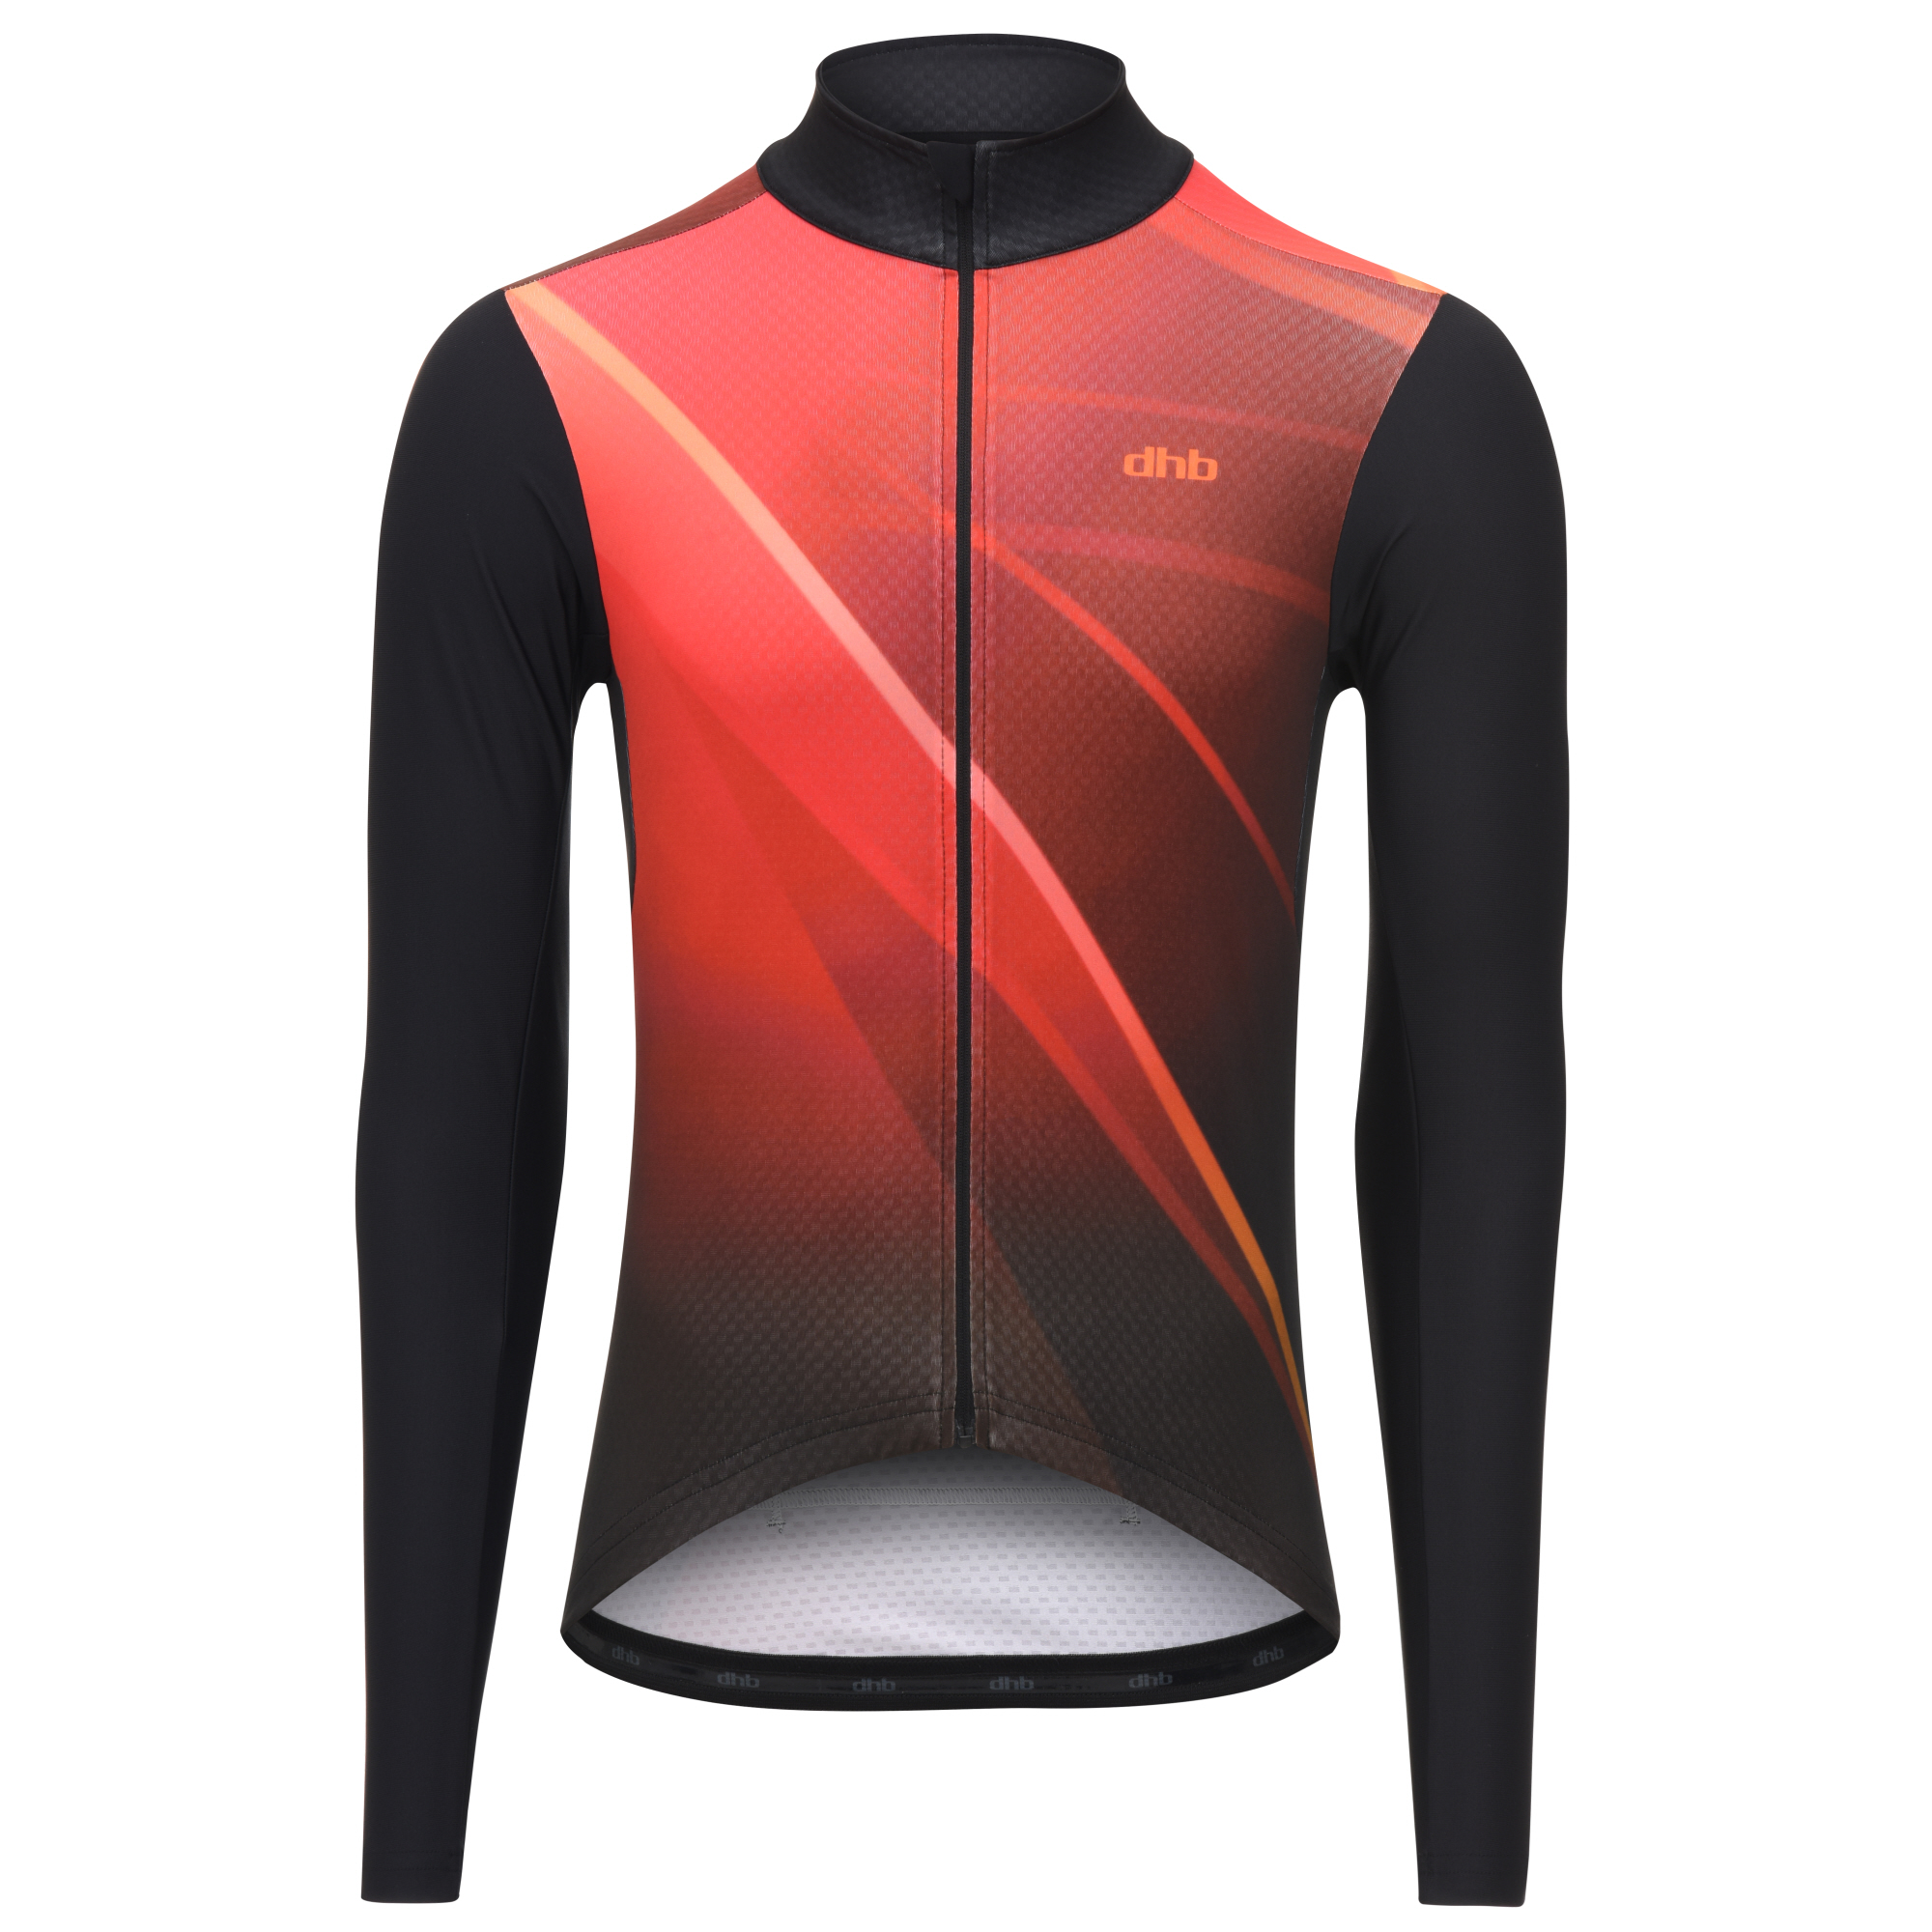 dhb Aeron Speed Equinox Jersey - Transmission | Jerseys